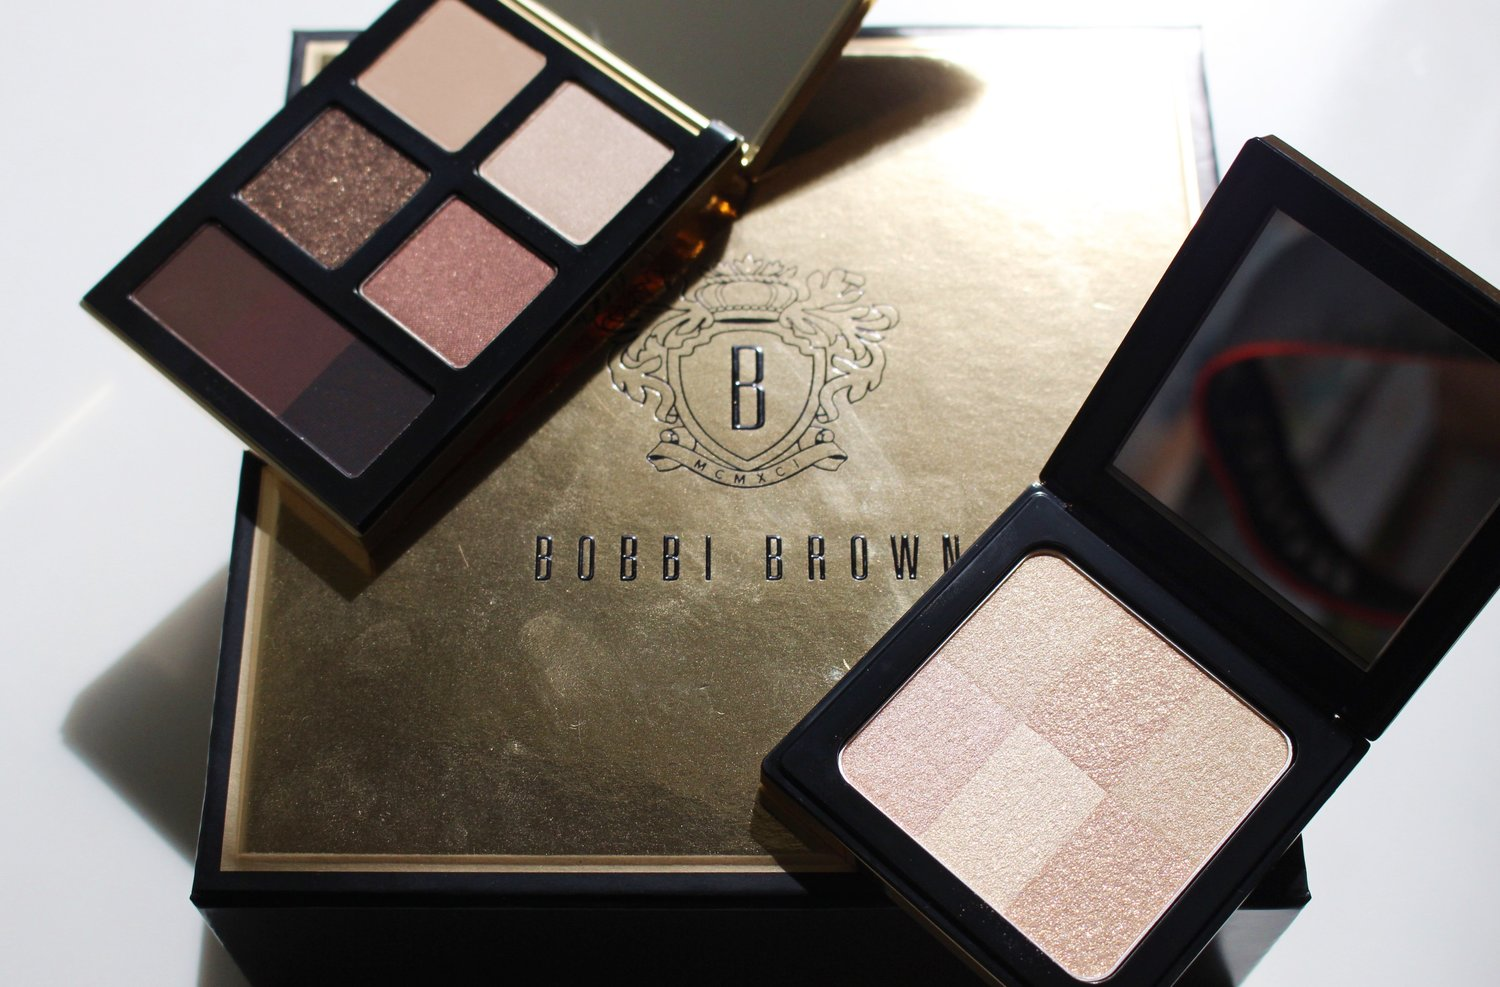 A Holiday Ready Look With The The Bobbi Brown Wine Chocolate